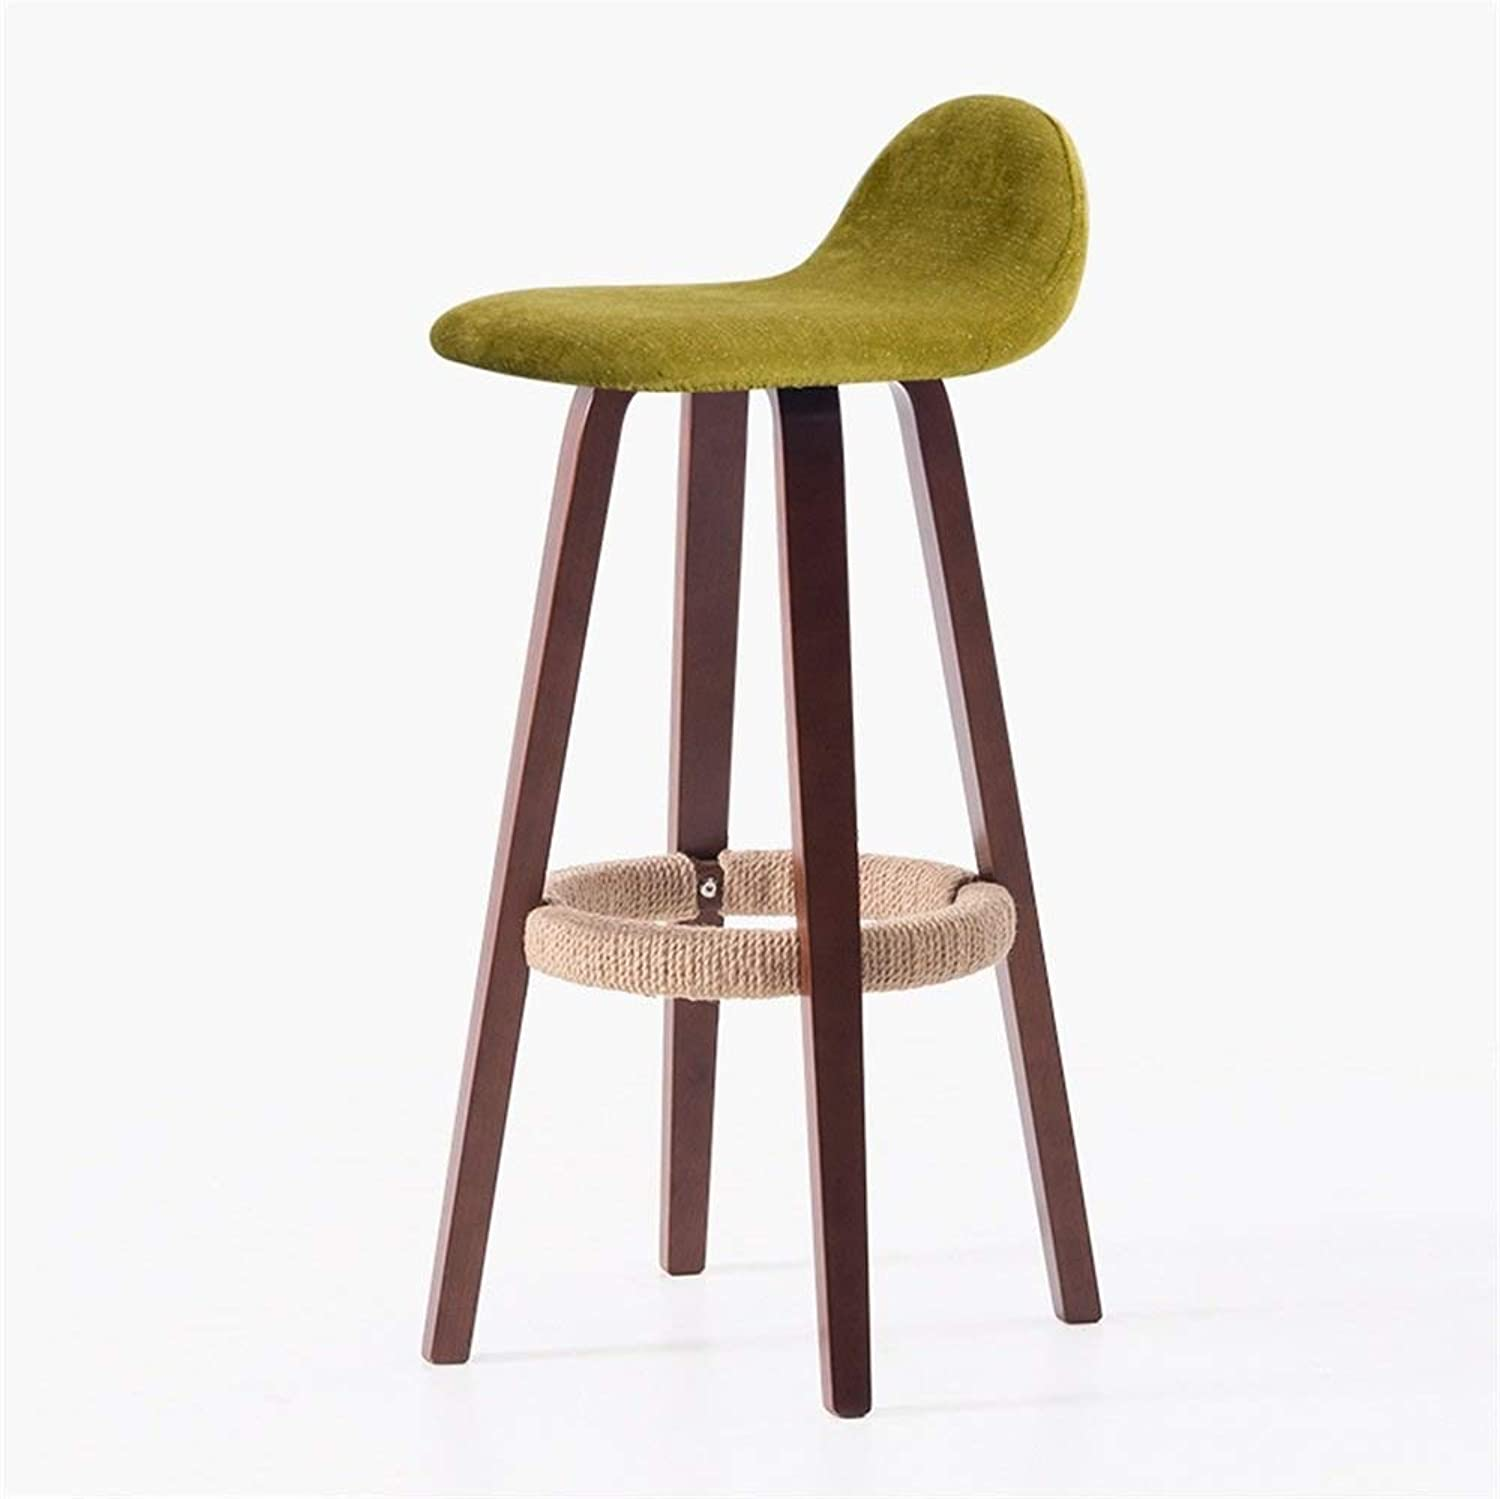 Vintage Solid Wood Bar Stool with Backrest, Bar Kitchen Height Counter Seat (Brown Wood Hemp Rope Art Yellow Green)